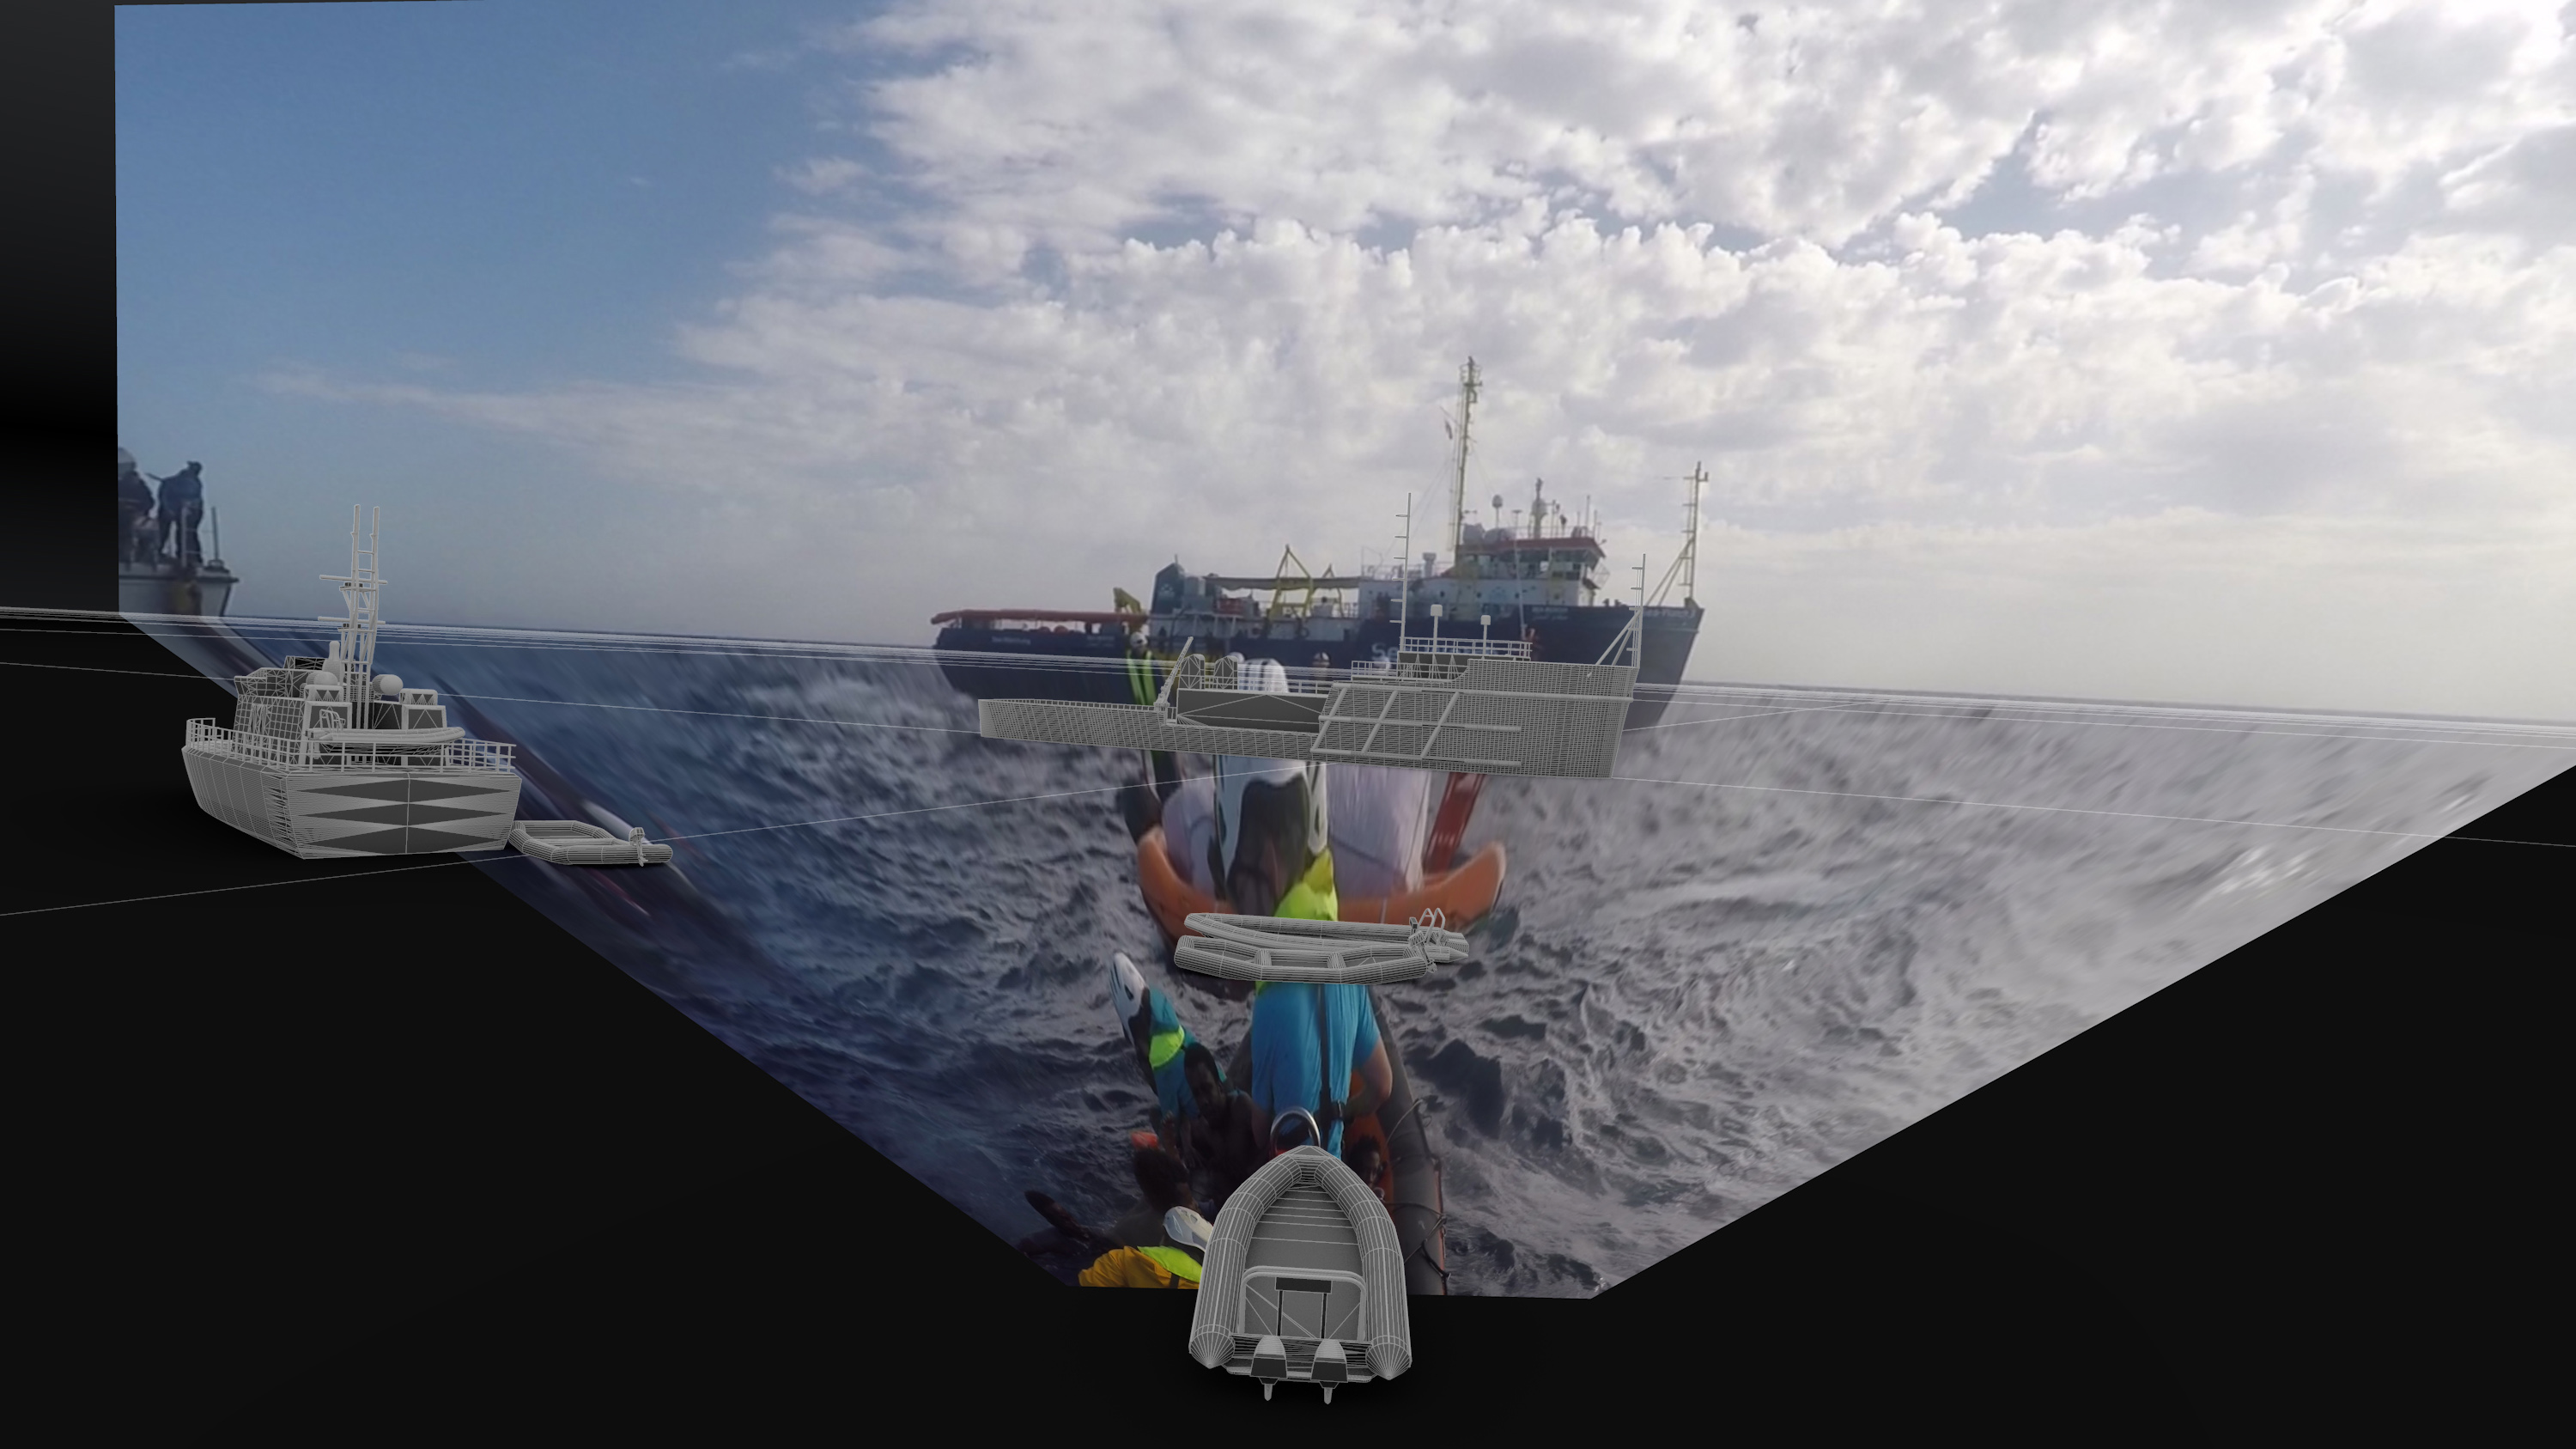 Forensic Oceanography and Forensic Architecture, Film Still 1, 28 min, © Mare Clausum – The Sea Watch vs Libyan Coast Guard Case, 2018, 28 min, Image: Forensic Oceanography and Forensic Architecture, 2018